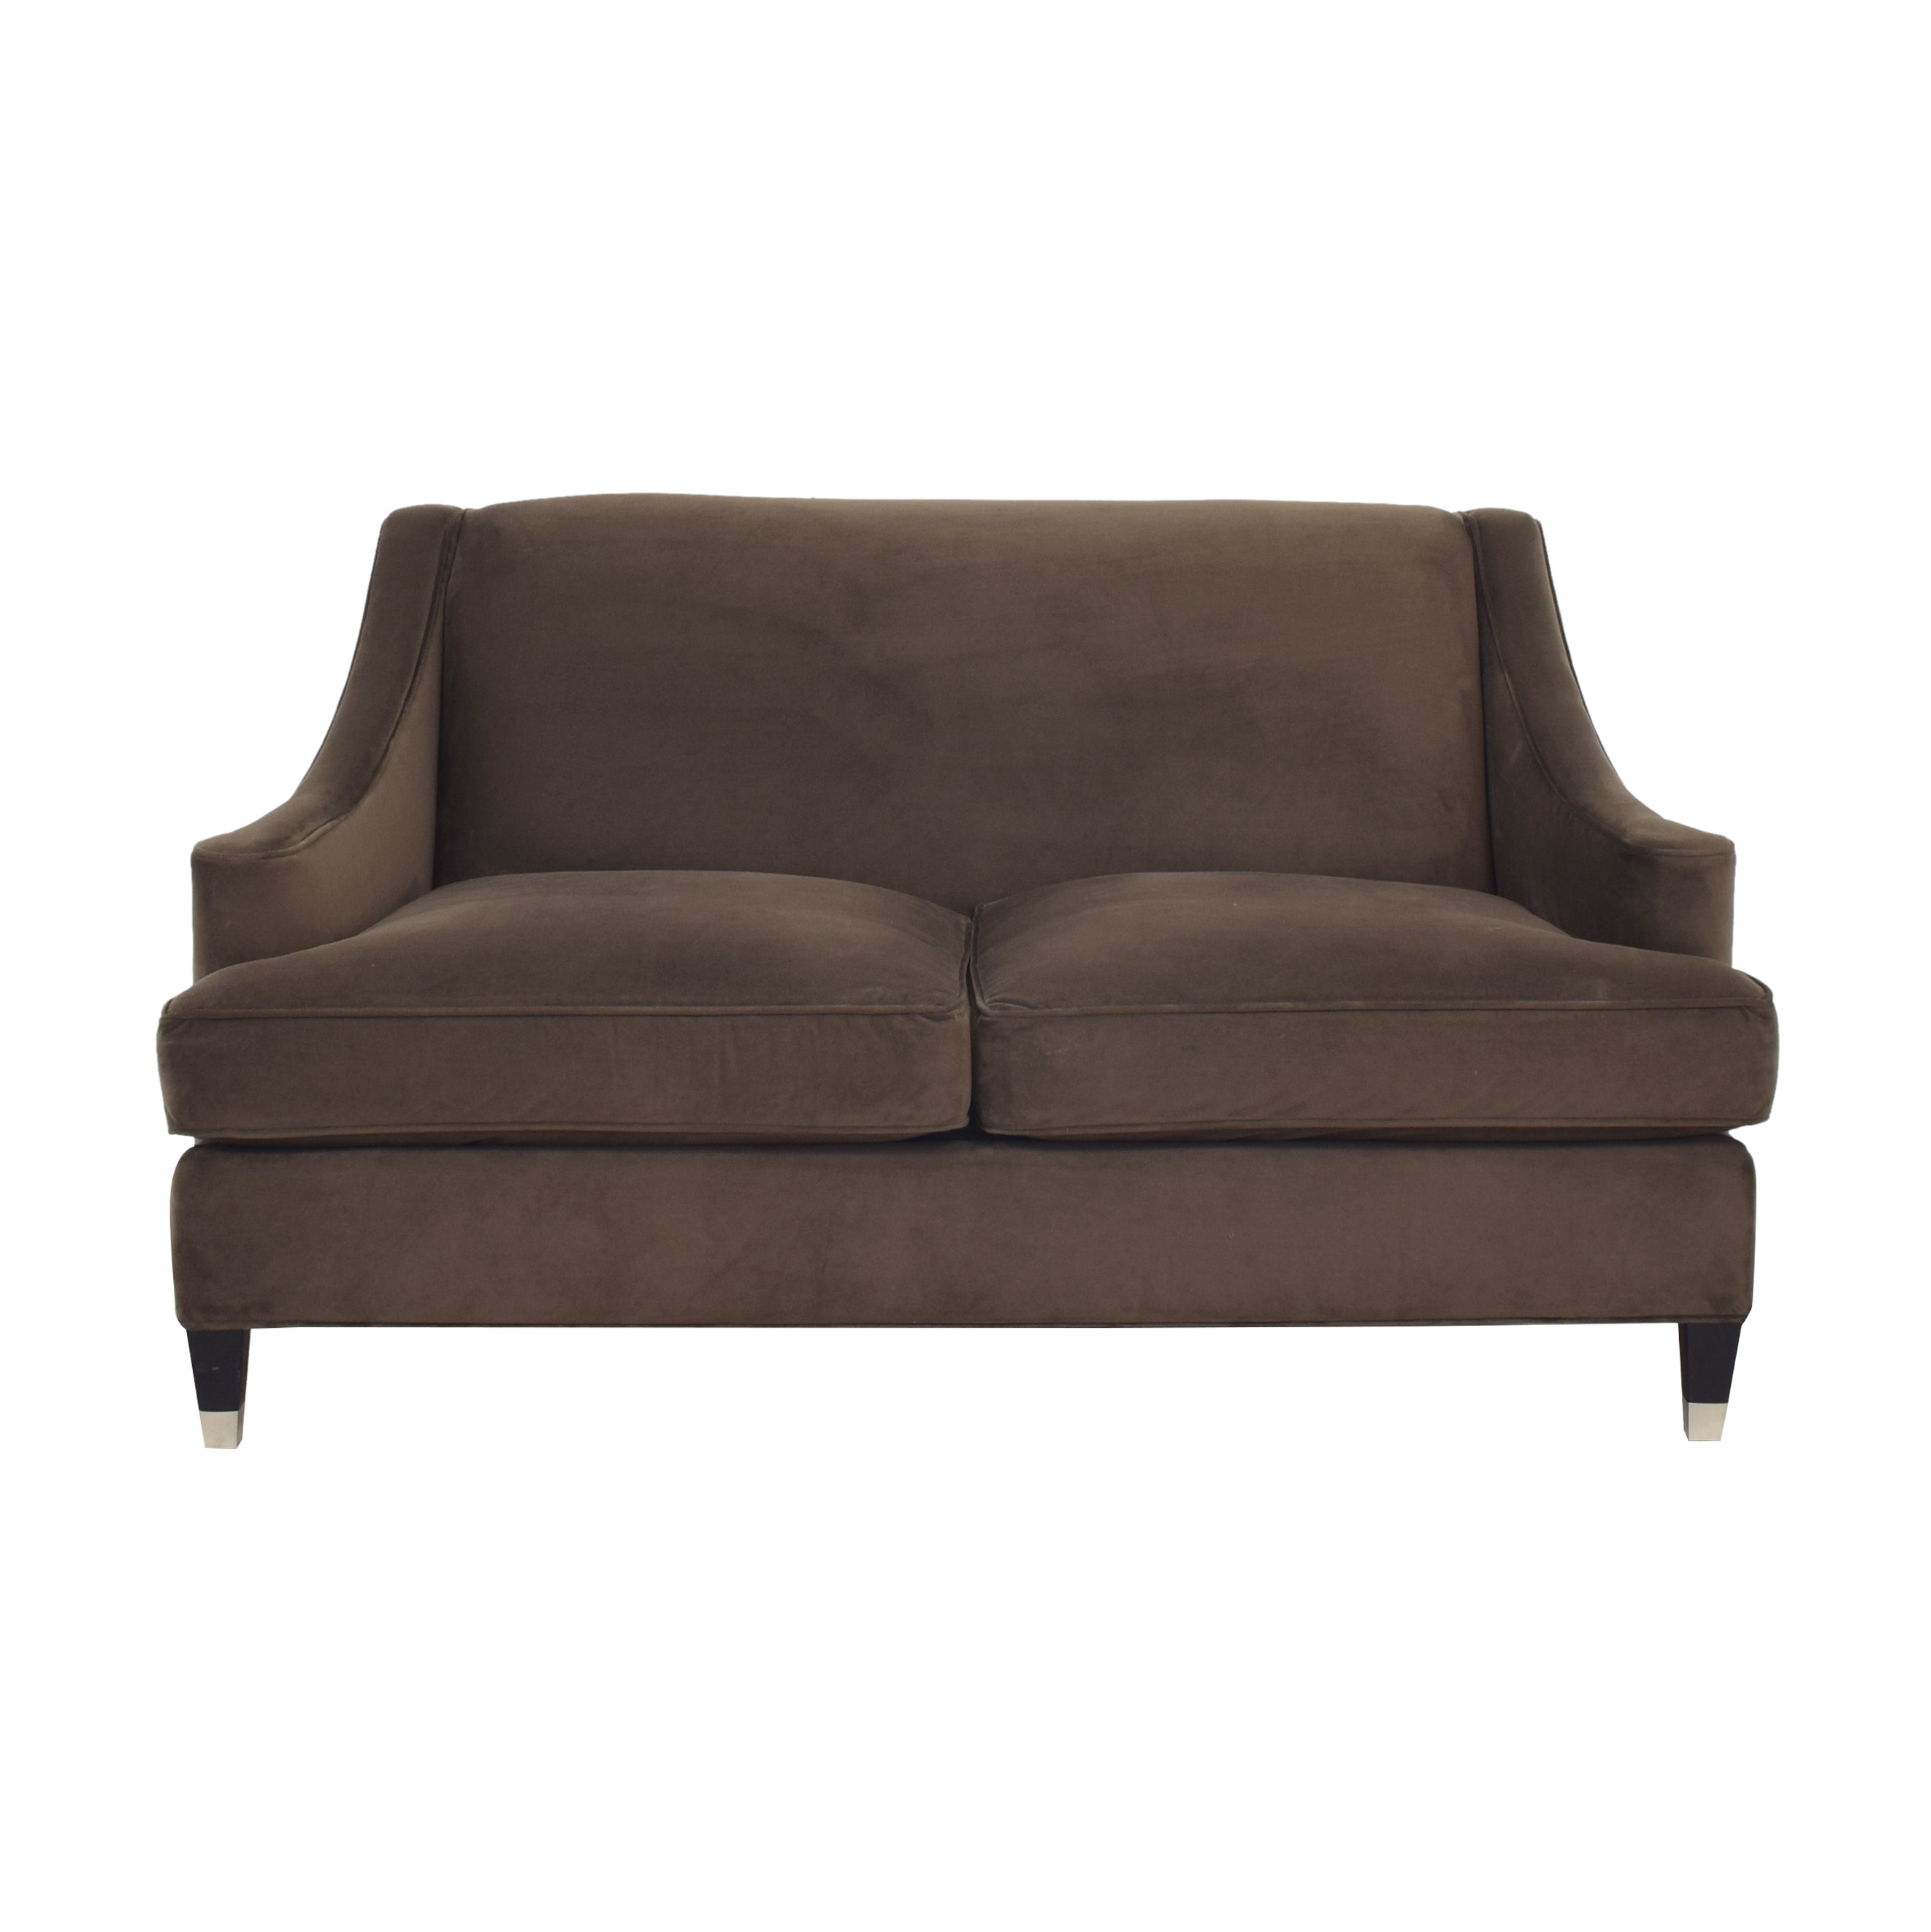 Room & Board Room & Board Loring Walnut Loveseat for sale